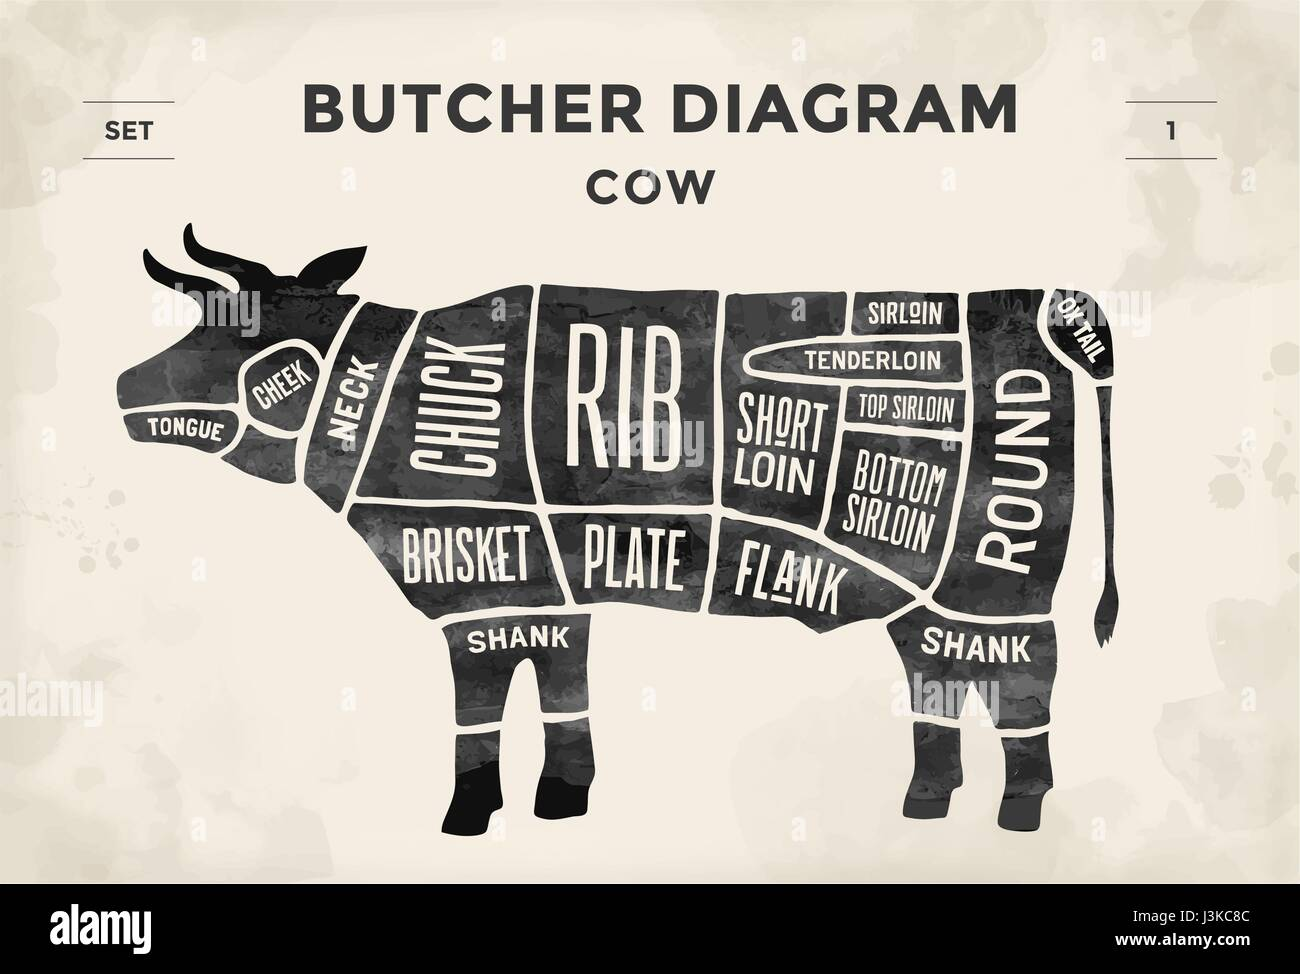 hight resolution of cut of meat set poster butcher diagram and scheme cow vintage typographic hand